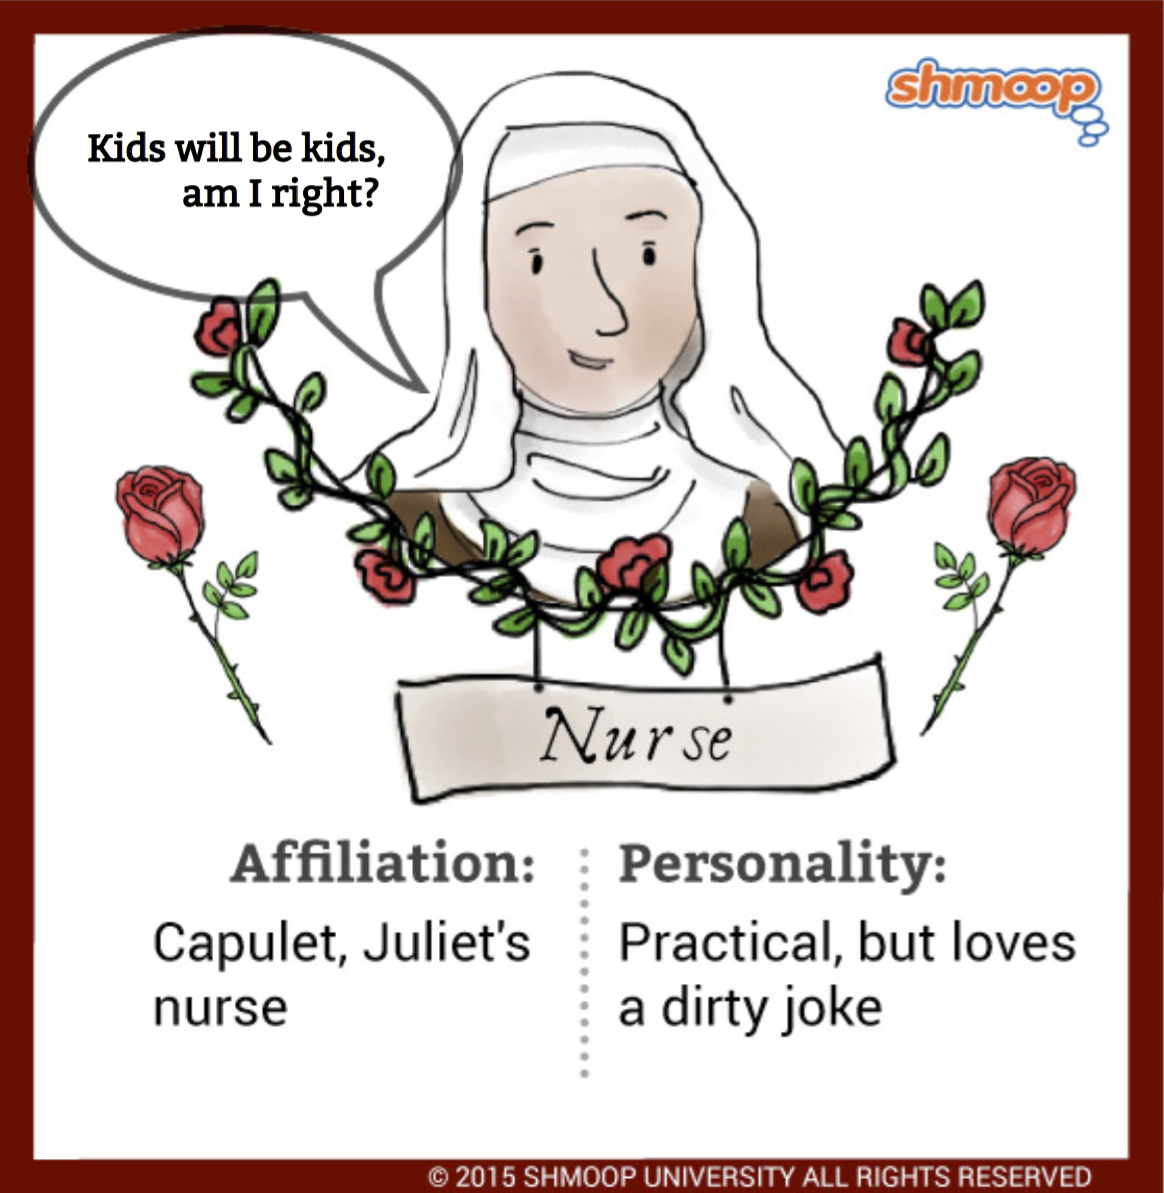 Romeo And Juliet Quotes And Meanings New The Nurse In Romeo And Juliet